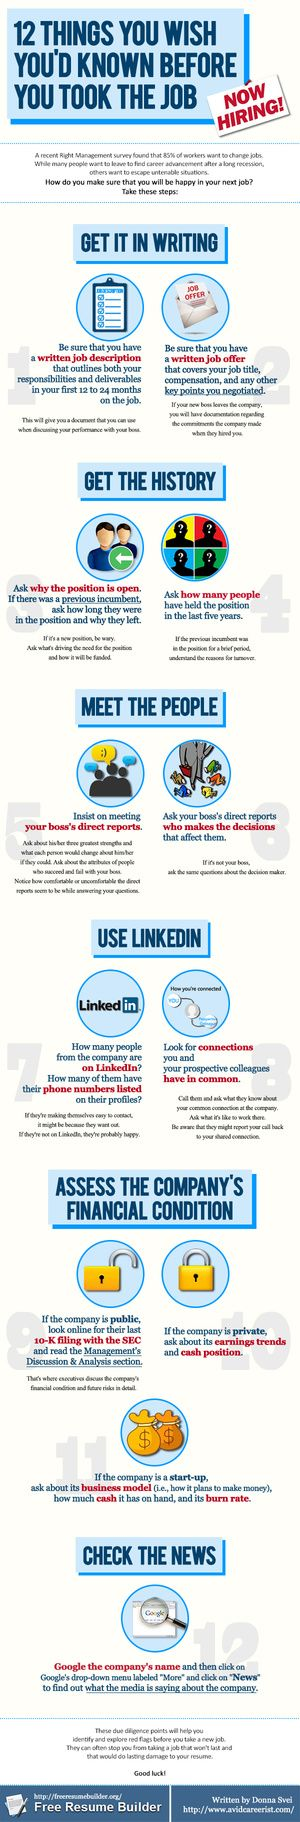 17 Best images about Other_Work1 on Pinterest Career, Career - elements of a good cover letter